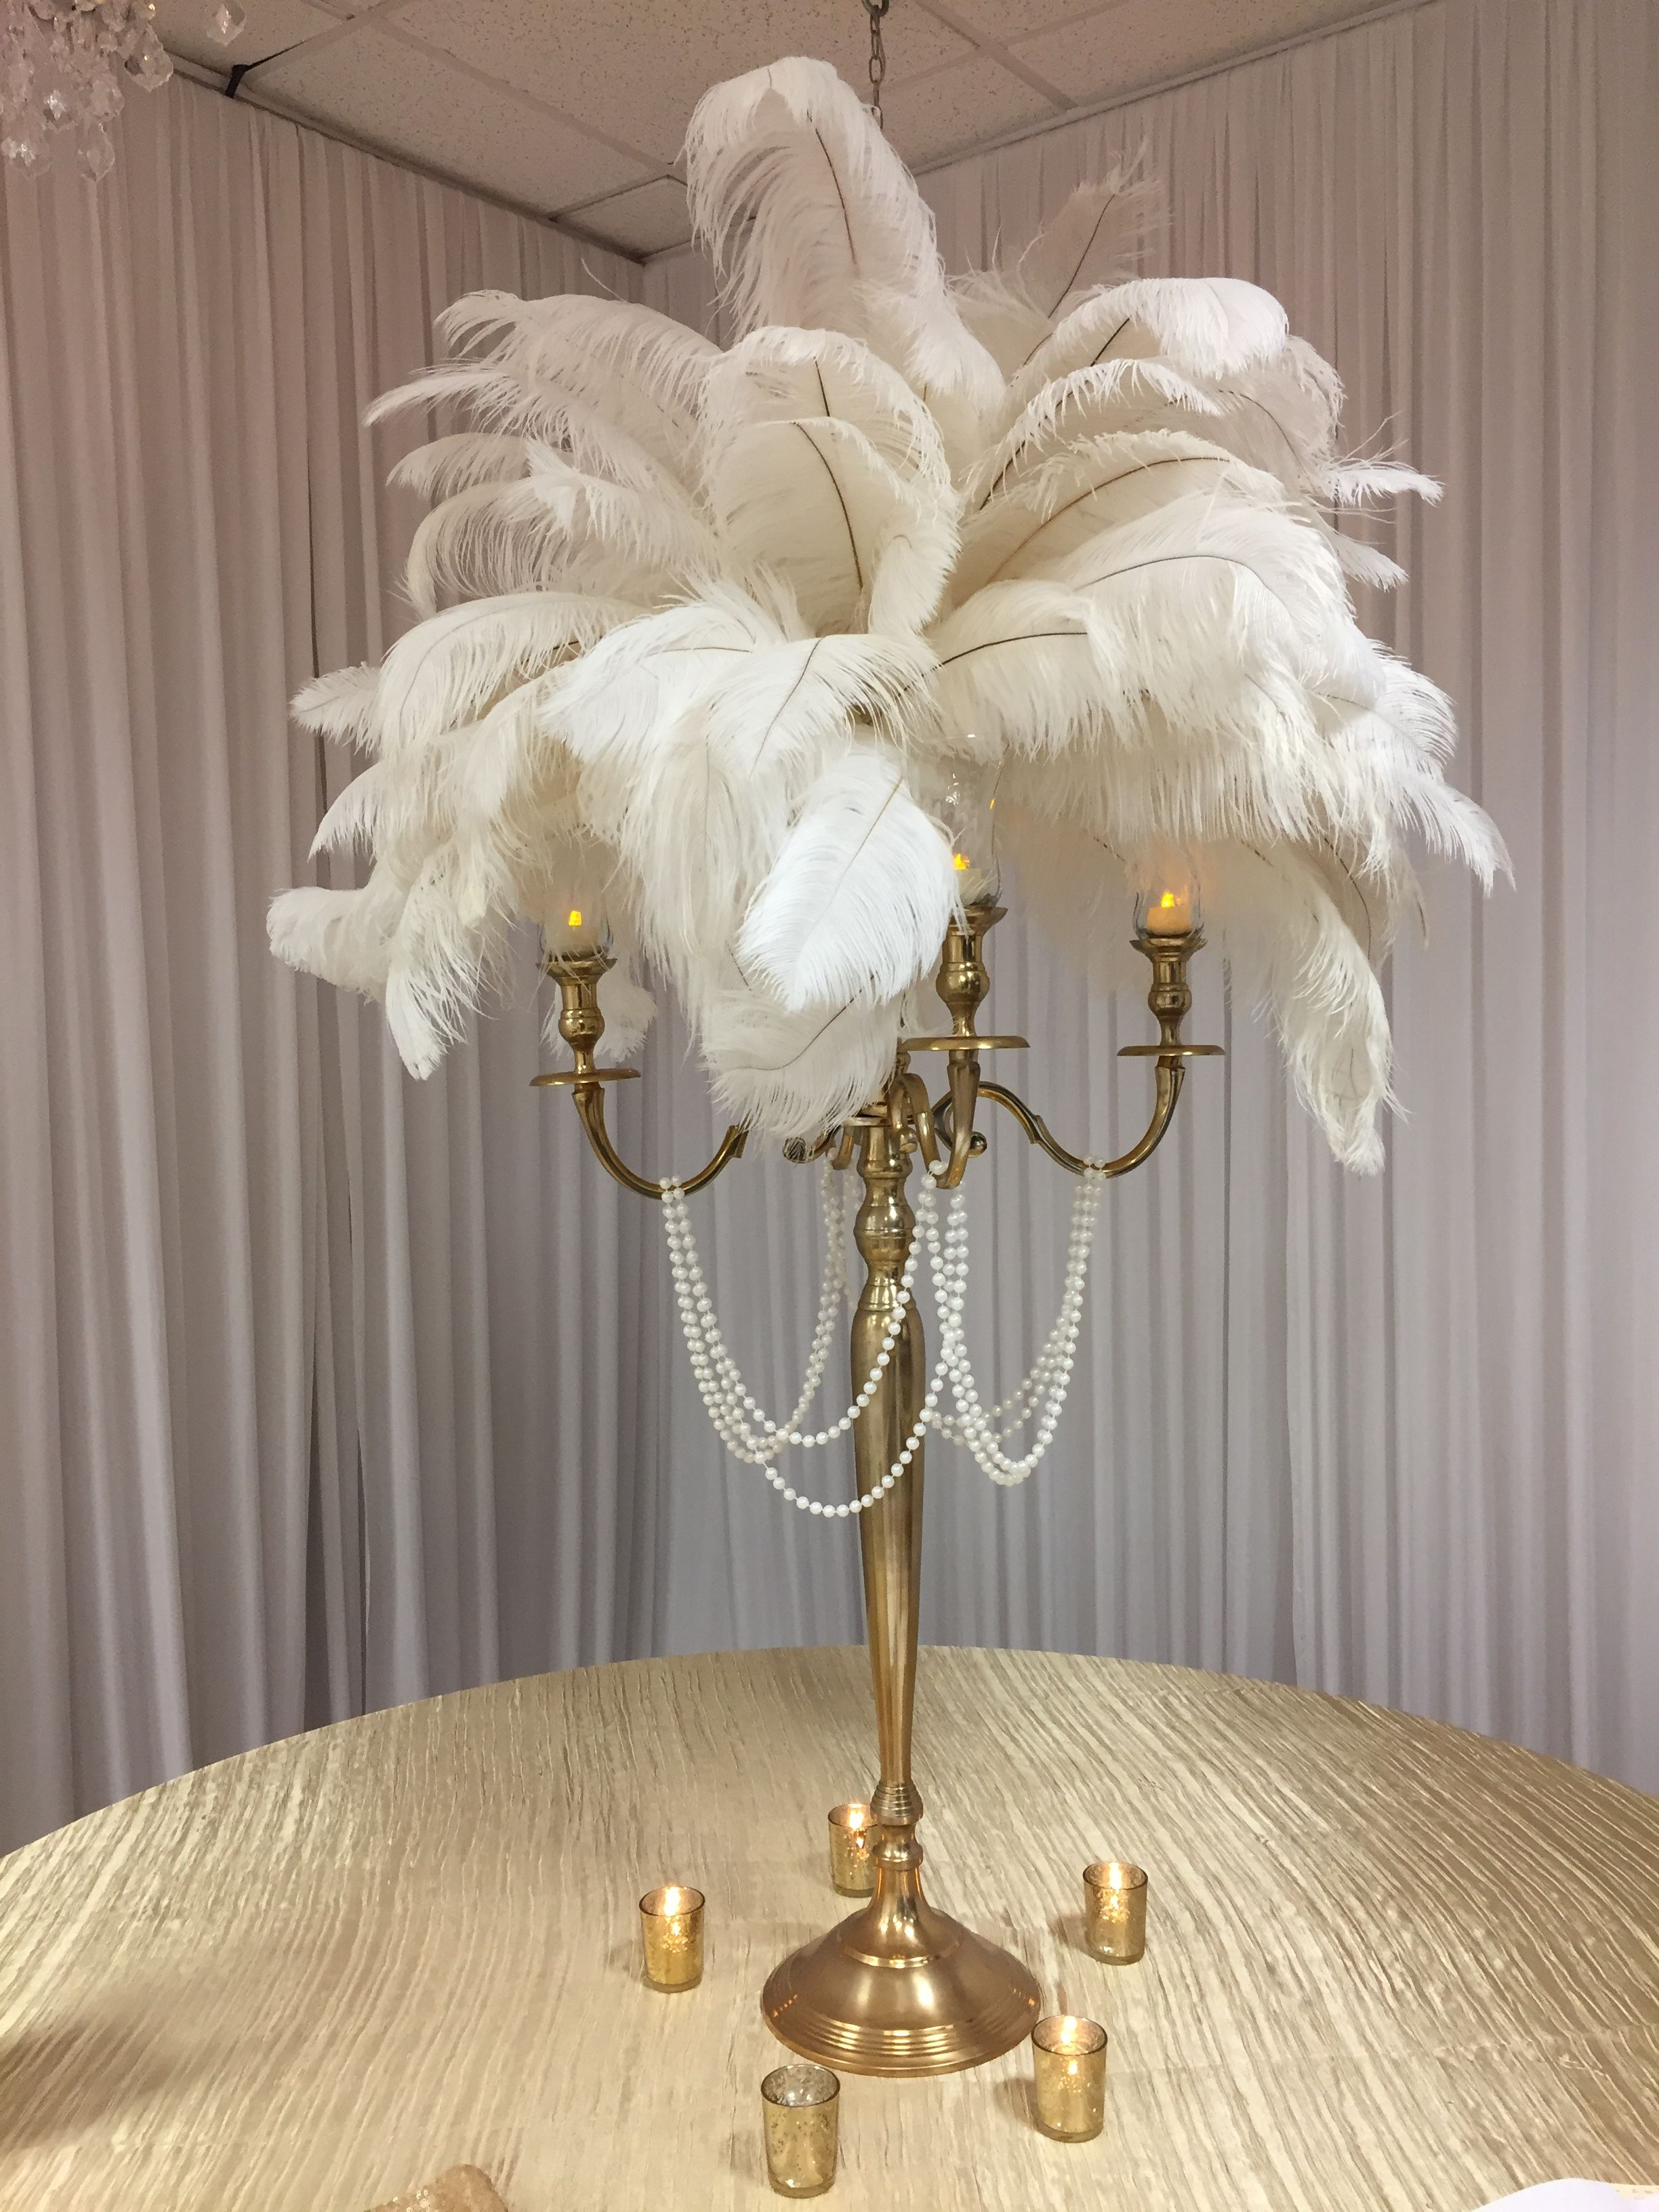 White feathers, candelabra, the pearls will be removed. This will ...